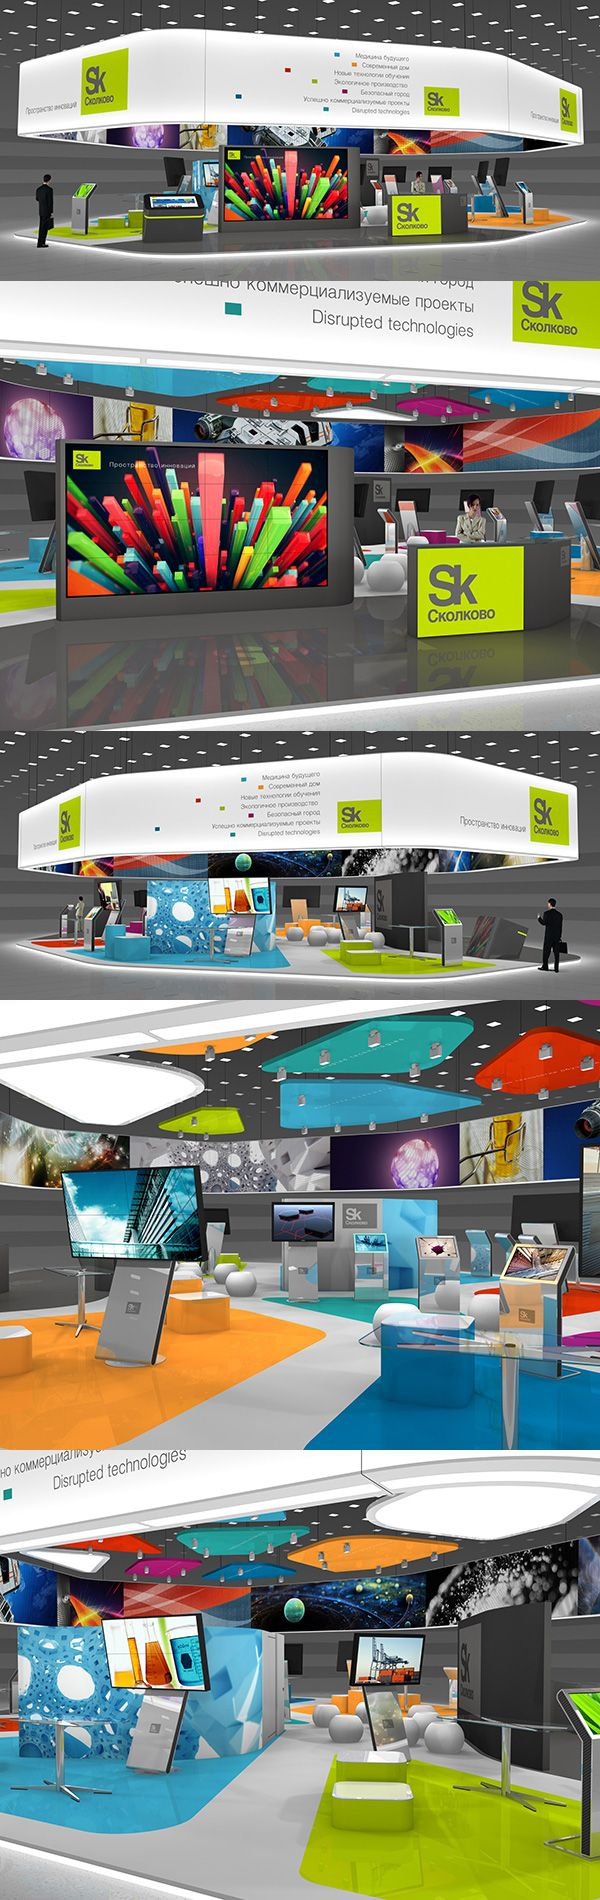 Sk exhibition stand on Behance